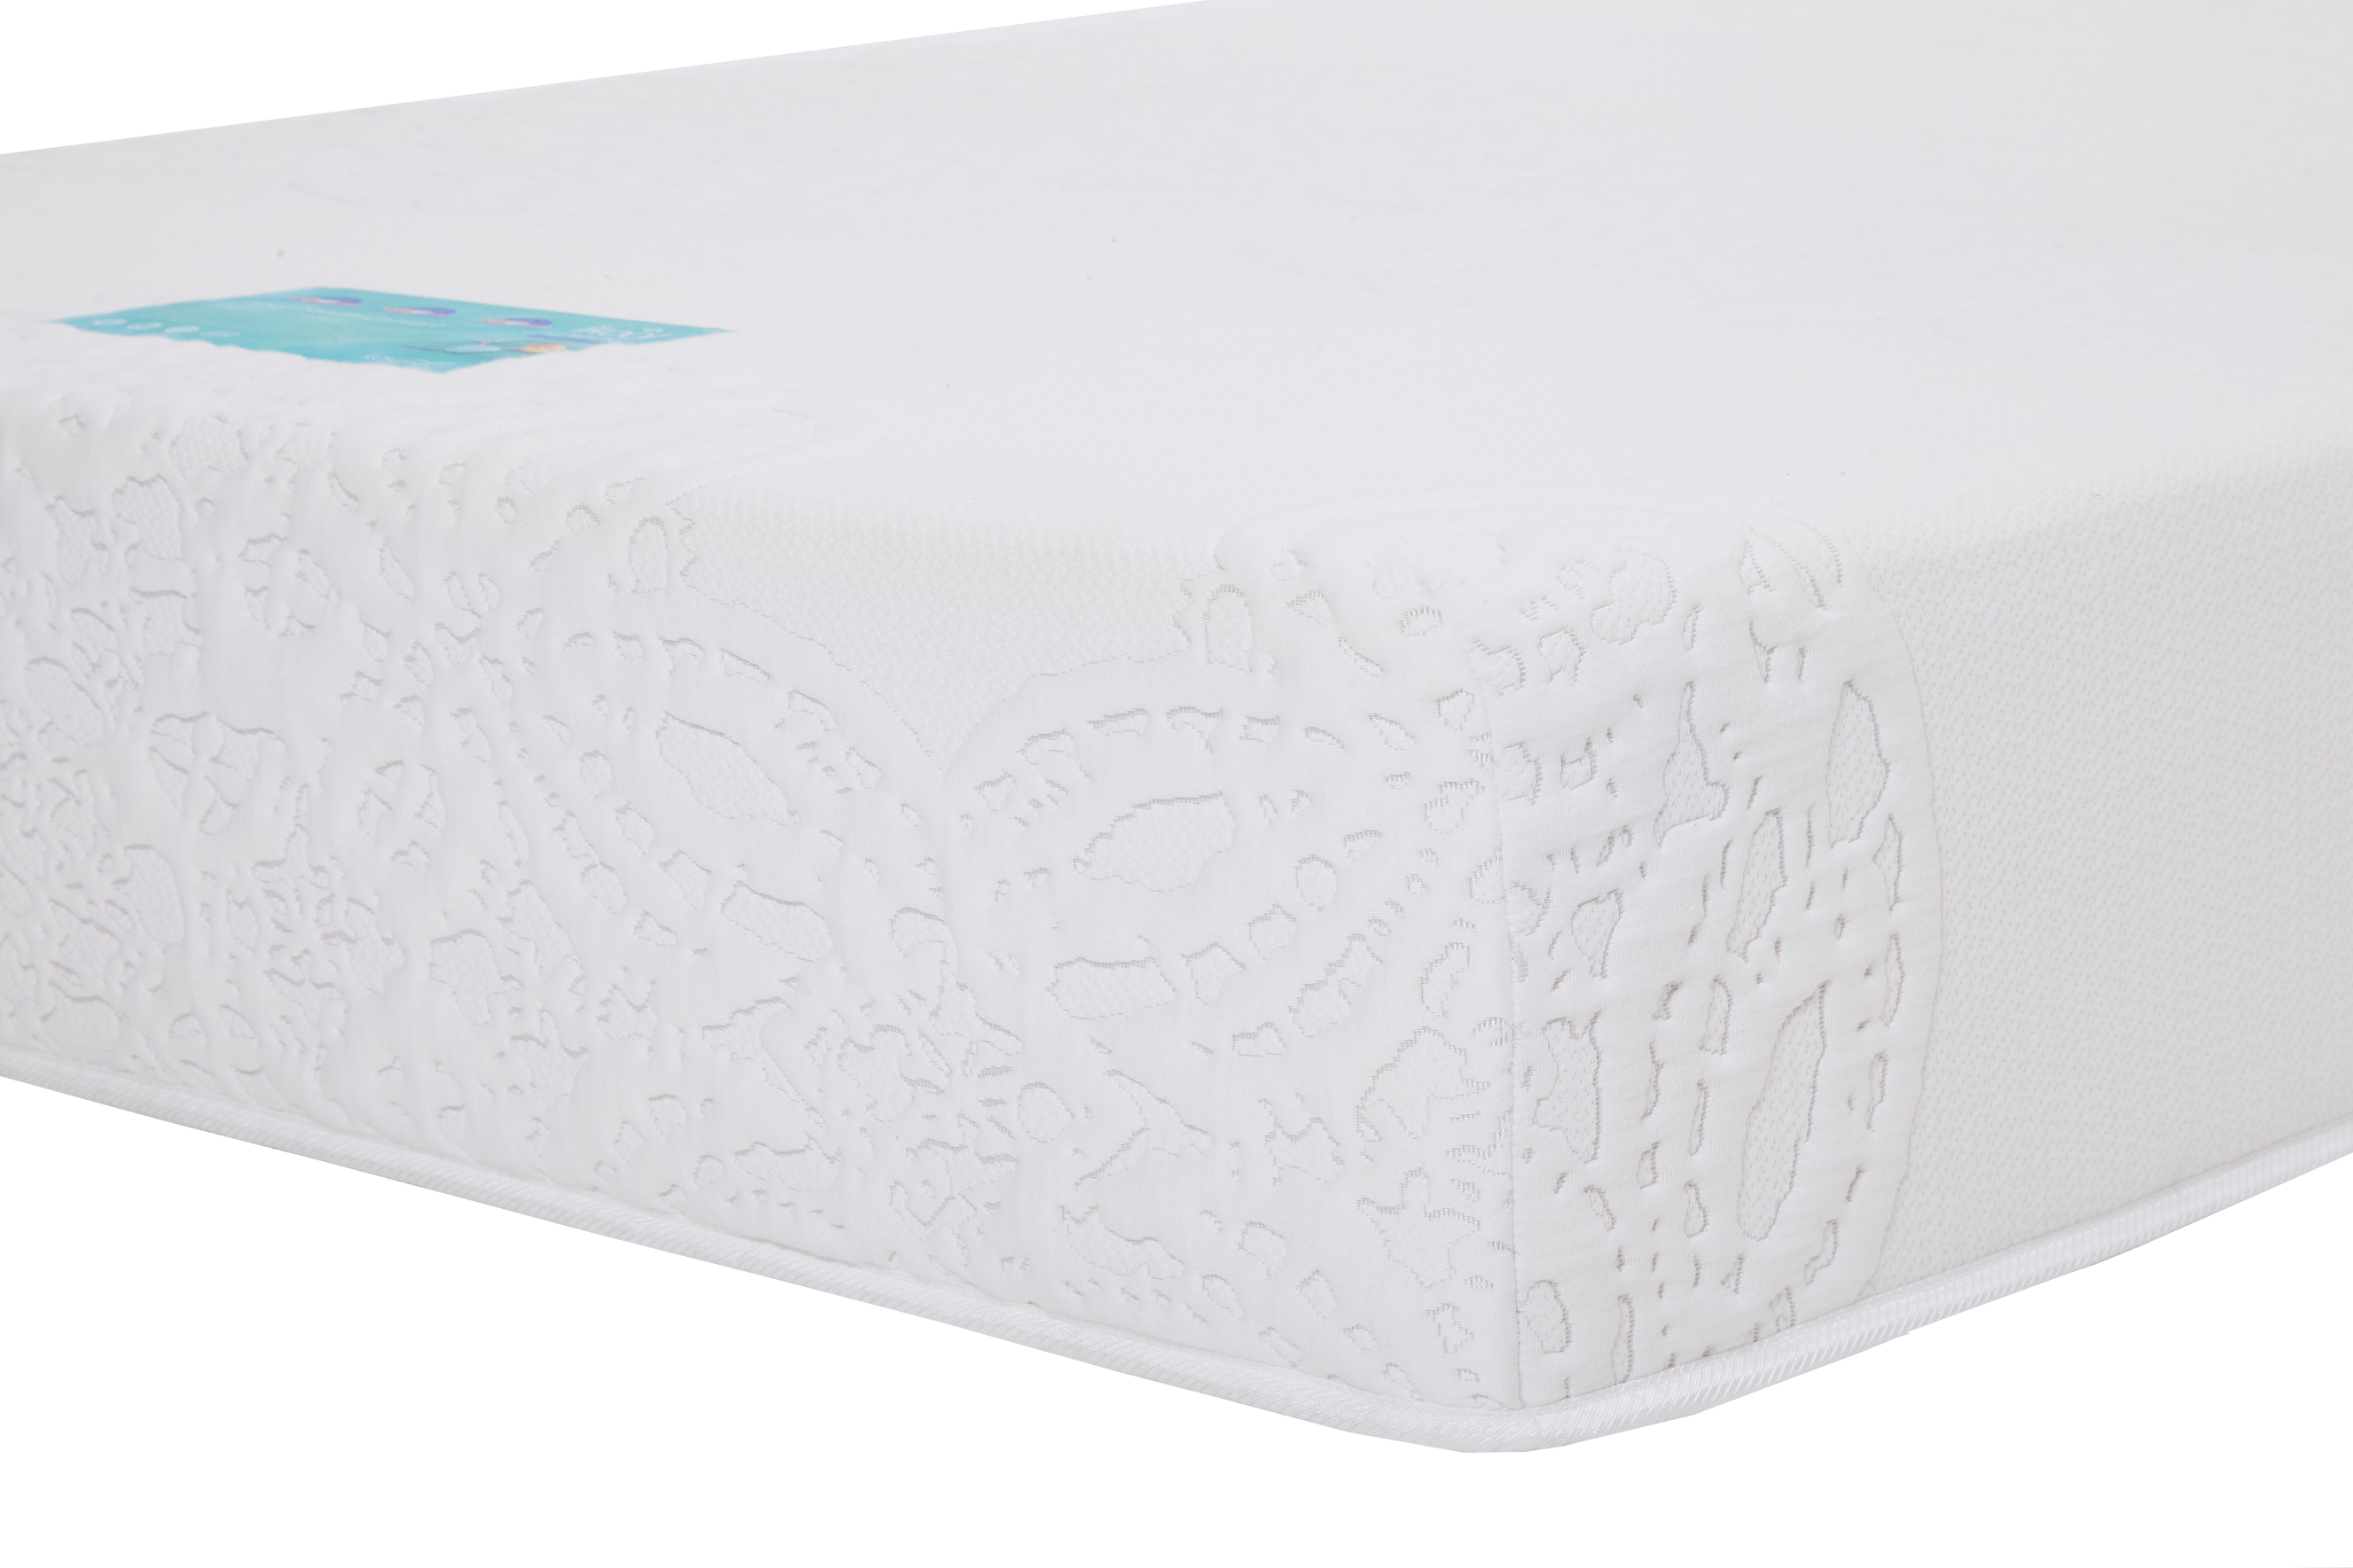 Kaymed iKool Saturn Comfort Mattress